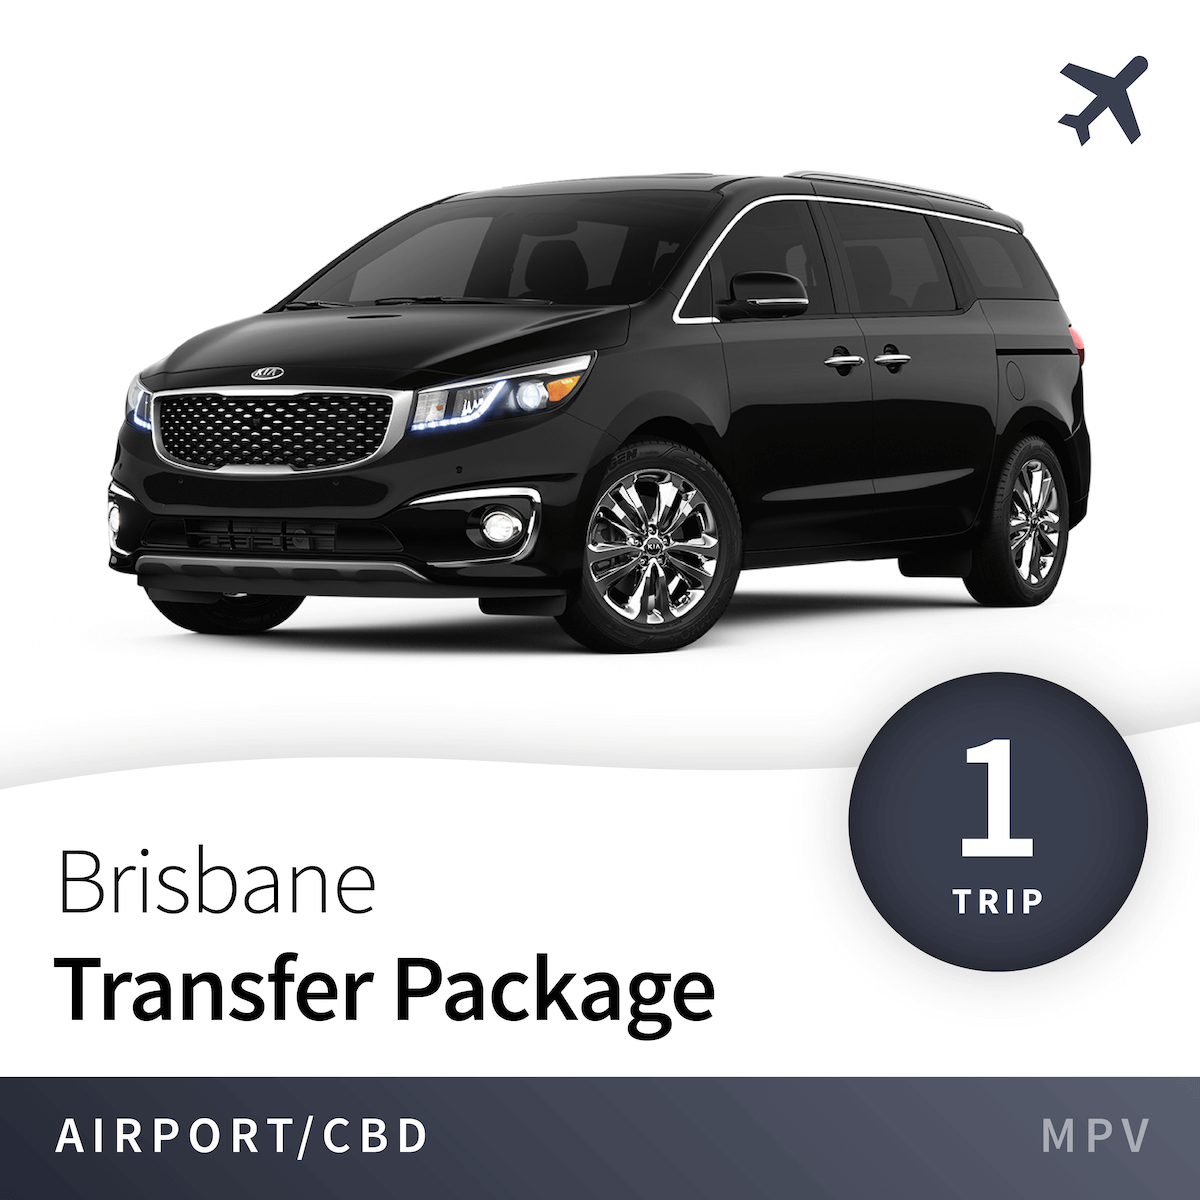 Brisbane Airport Transfer Package - MPV (1 Trip) 11